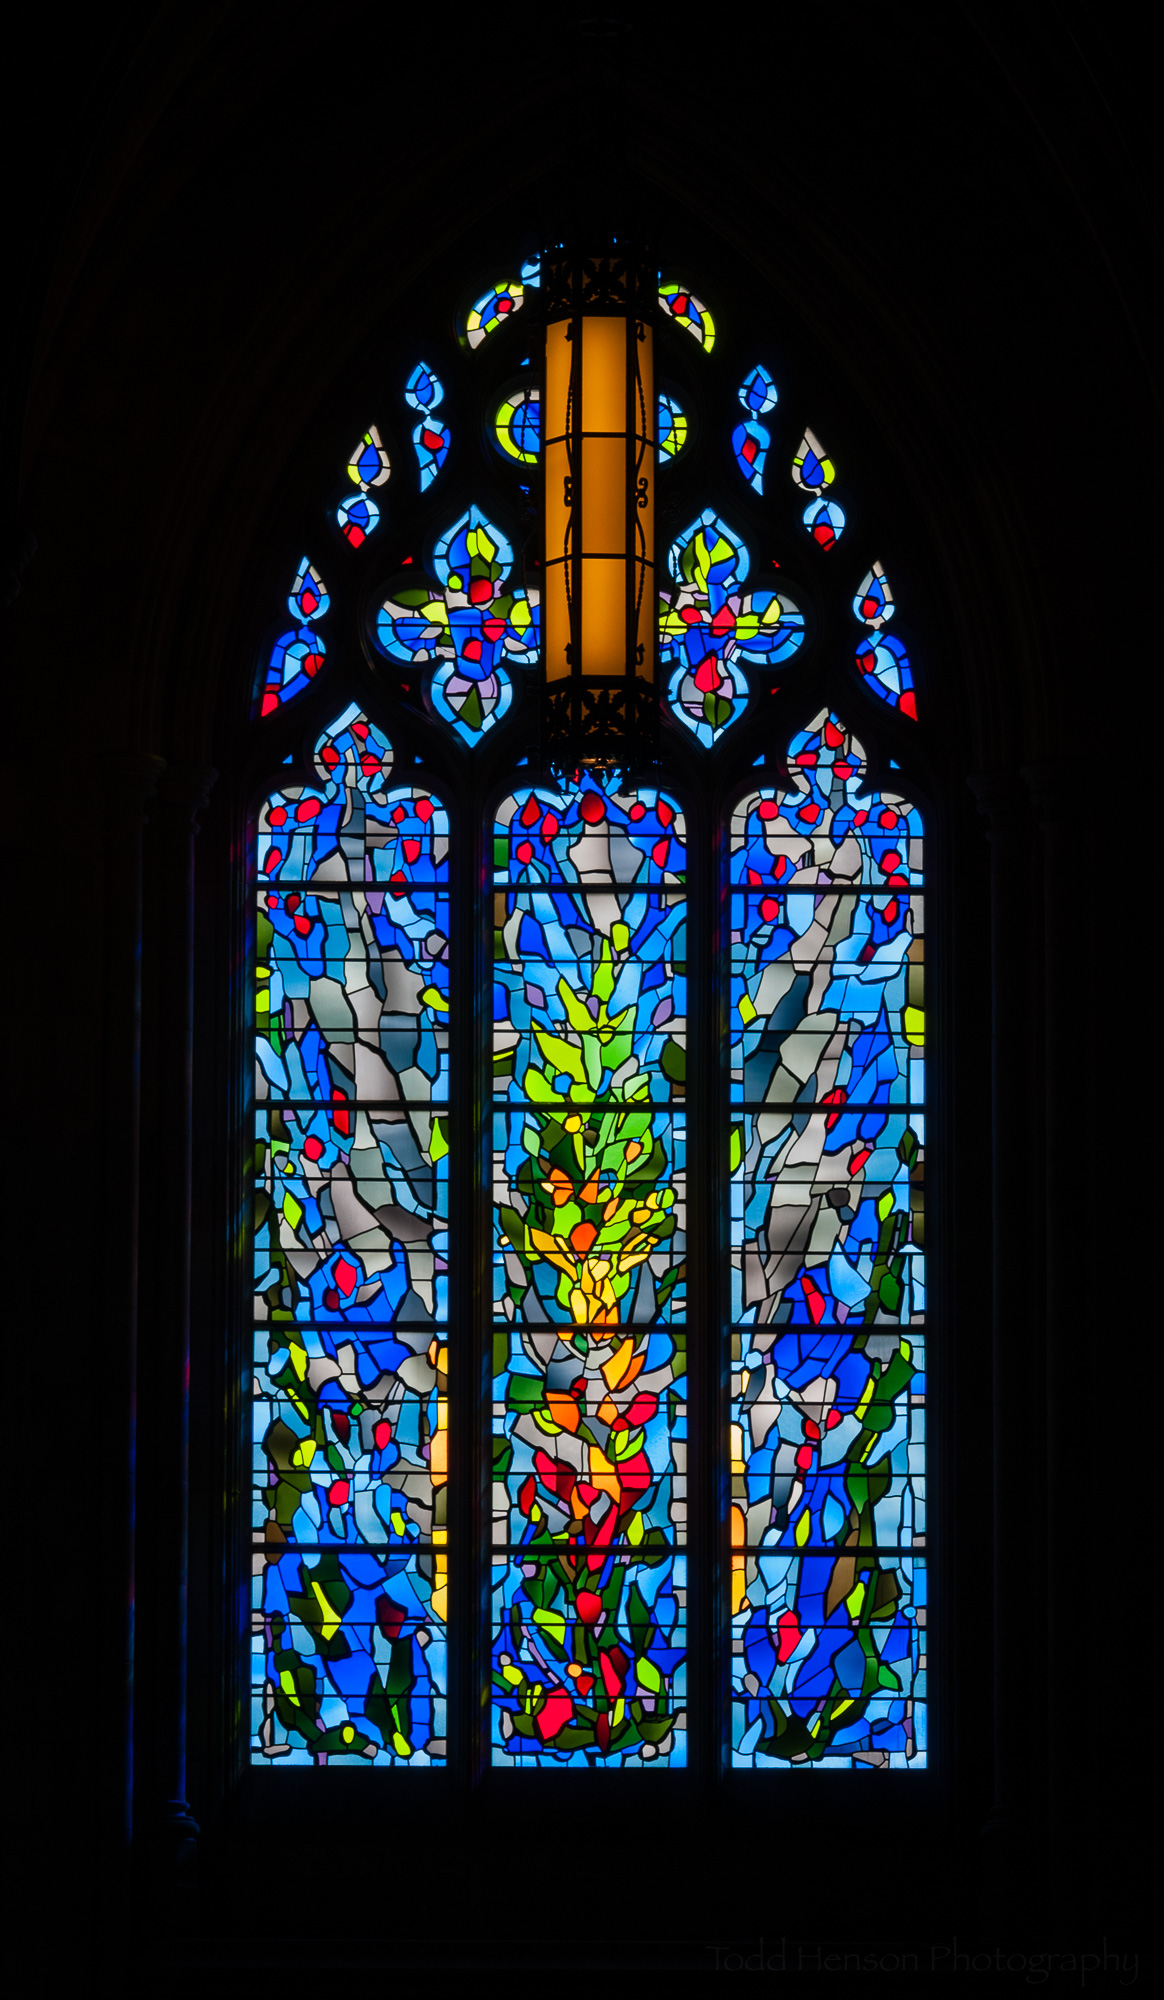 Founding of a New Nation. Stained glass window in Washington National Cathedral.